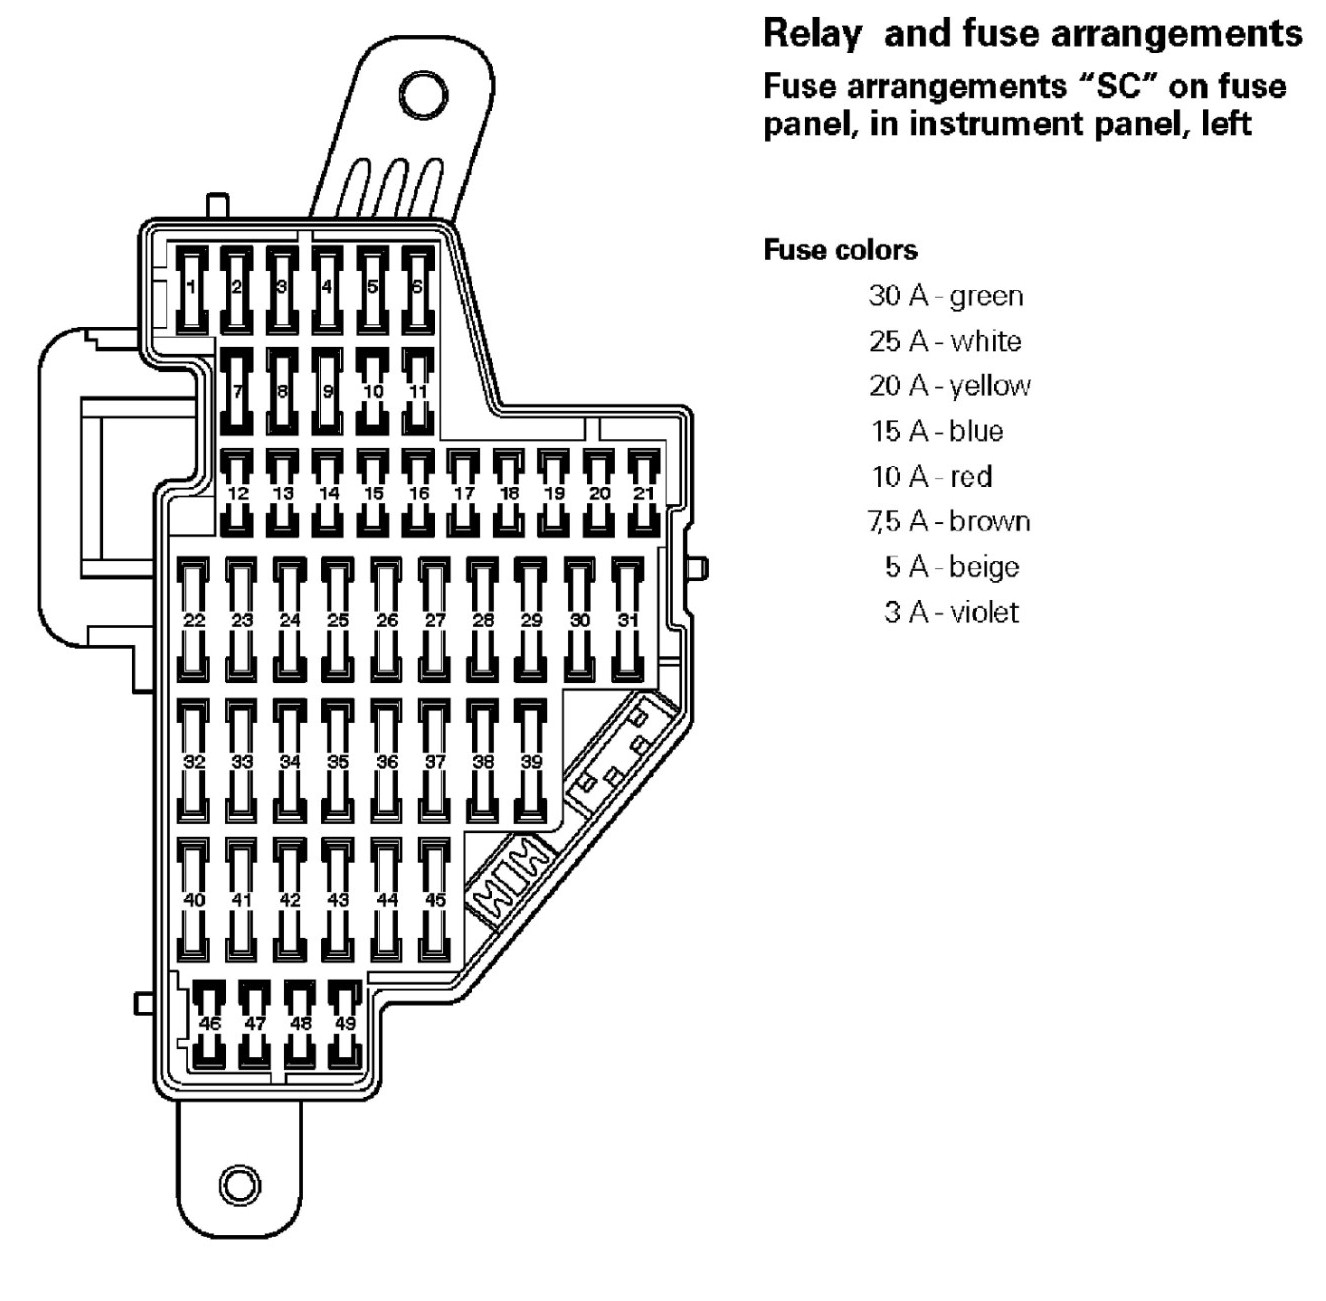 2007 Volkswagen Fuse Box - Wiring Diagram Server rub-answer -  rub-answer.ristoranteitredenari.it | 2007 Vw Jetta Fuse Diagram |  | Ristorante I Tre Denari Manerbio